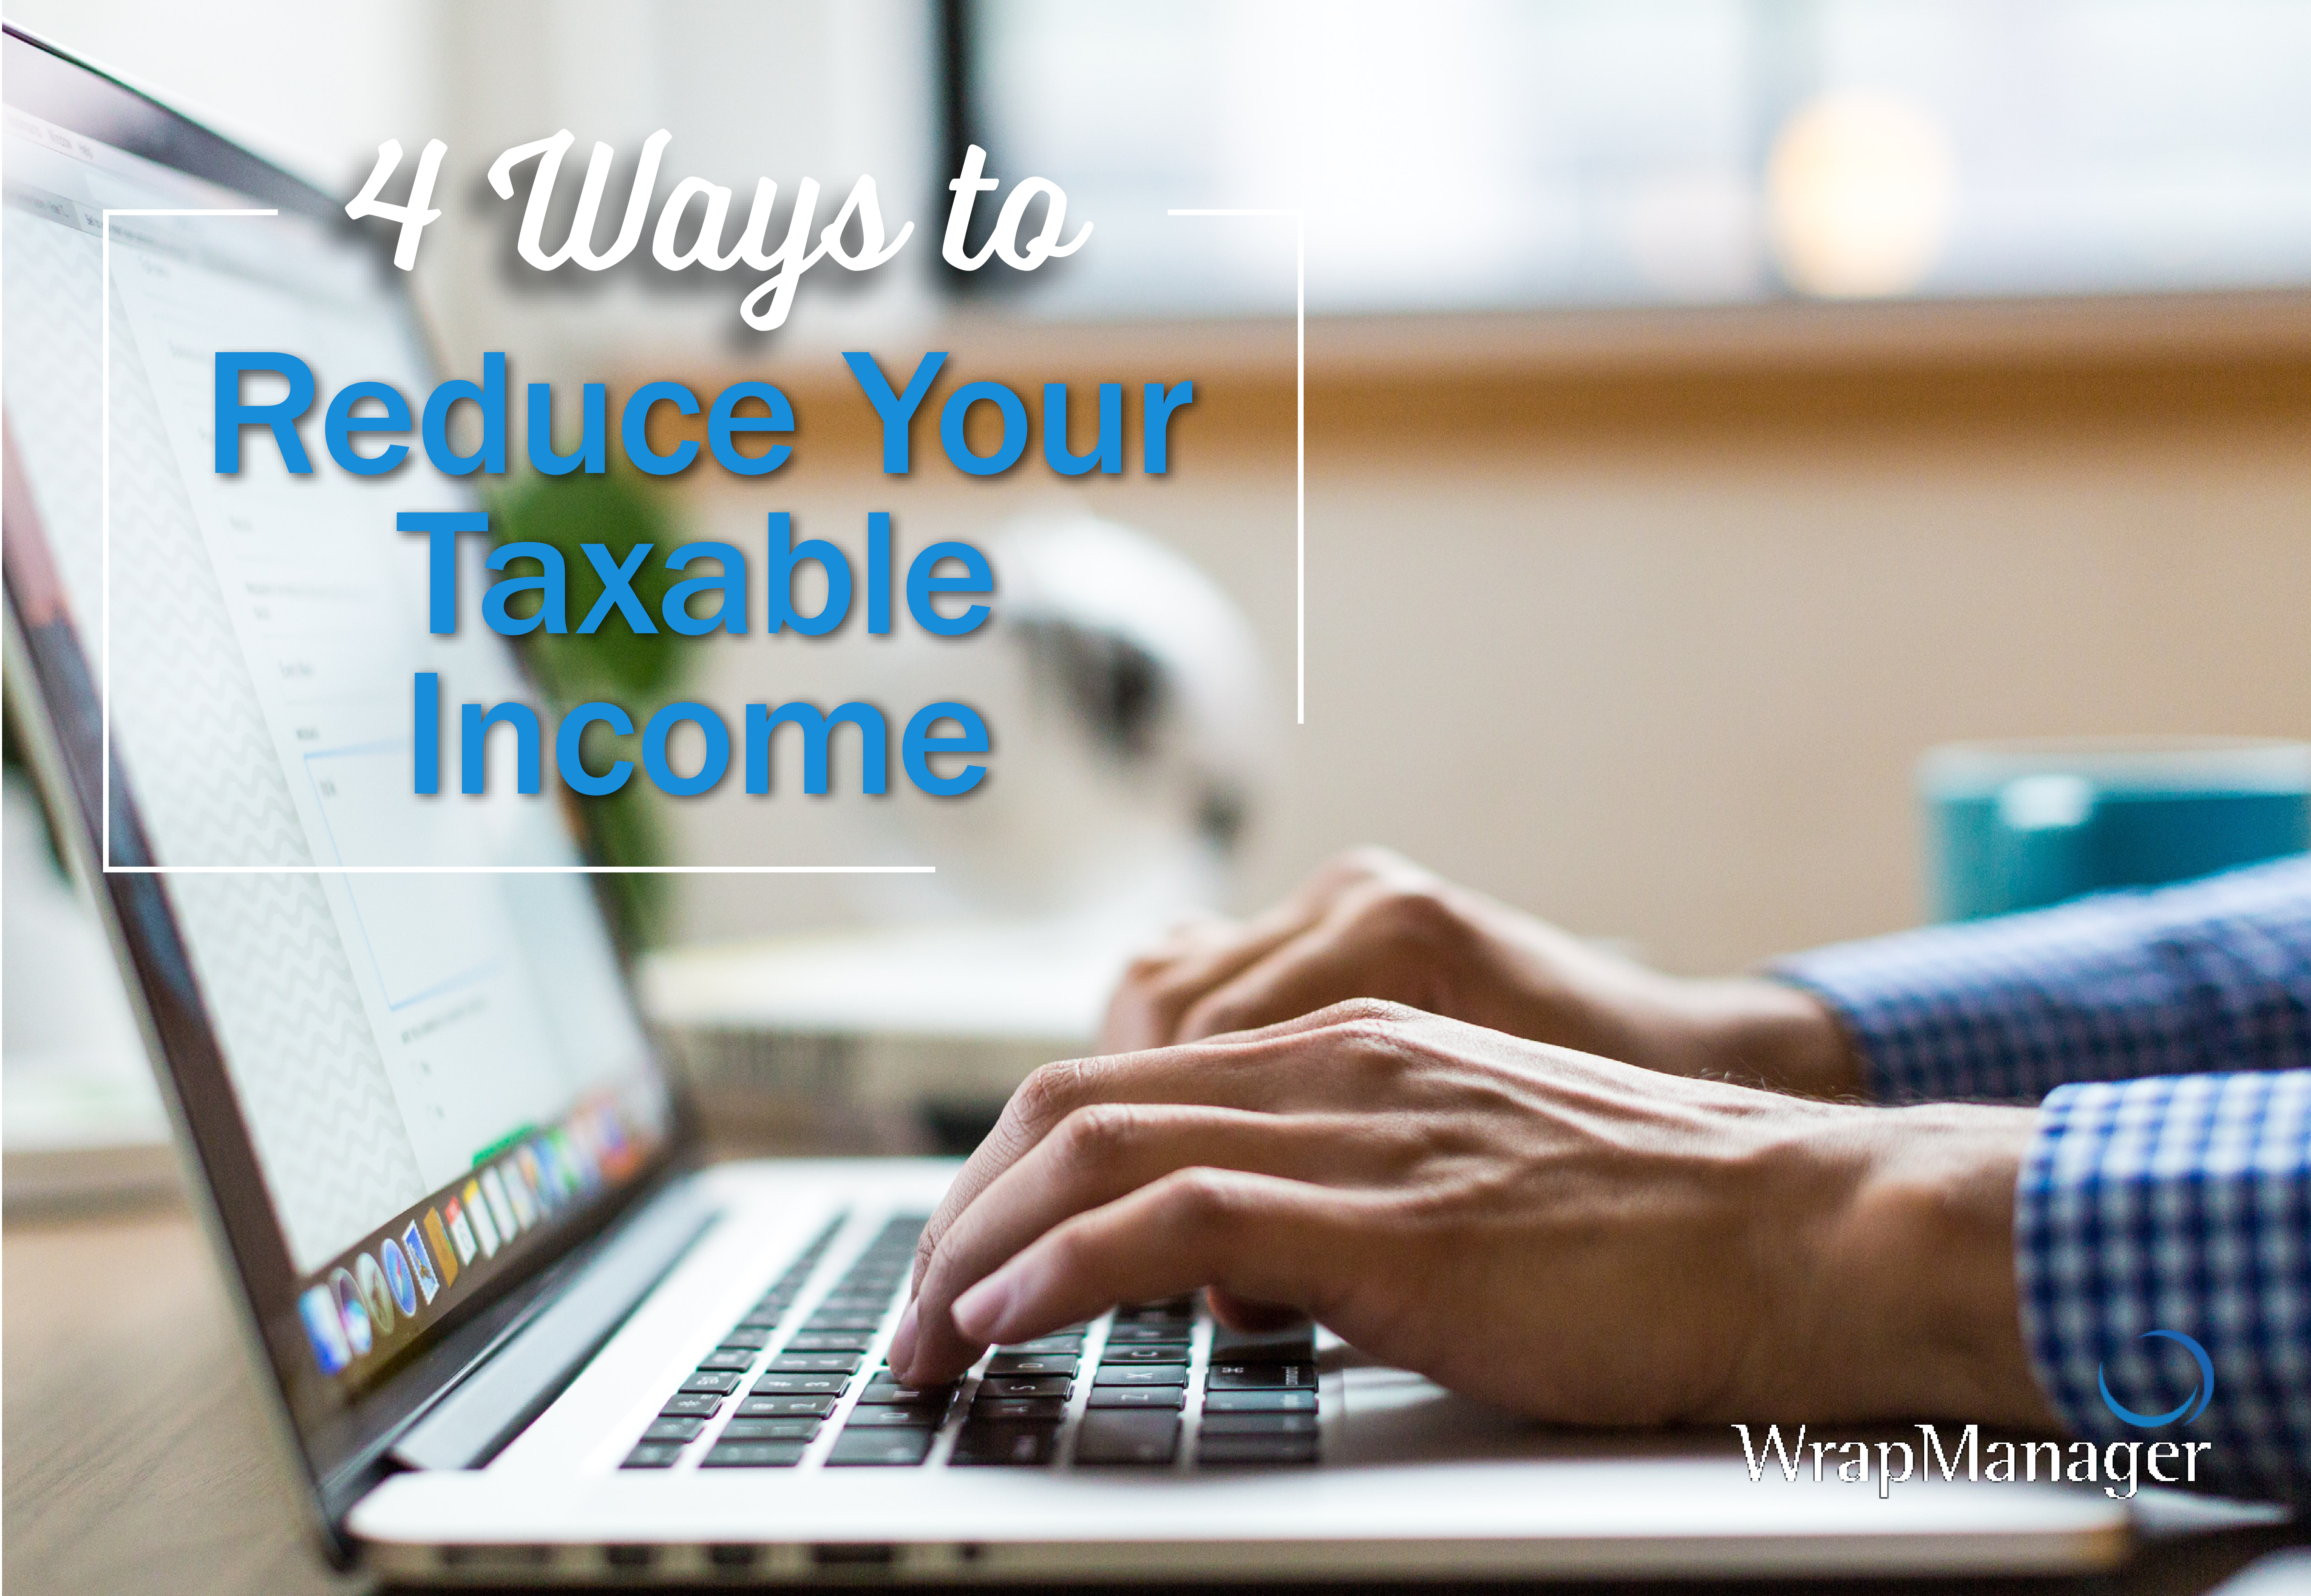 4 Ways the New Tax Law Can Reduce Your 2018 Taxable Income